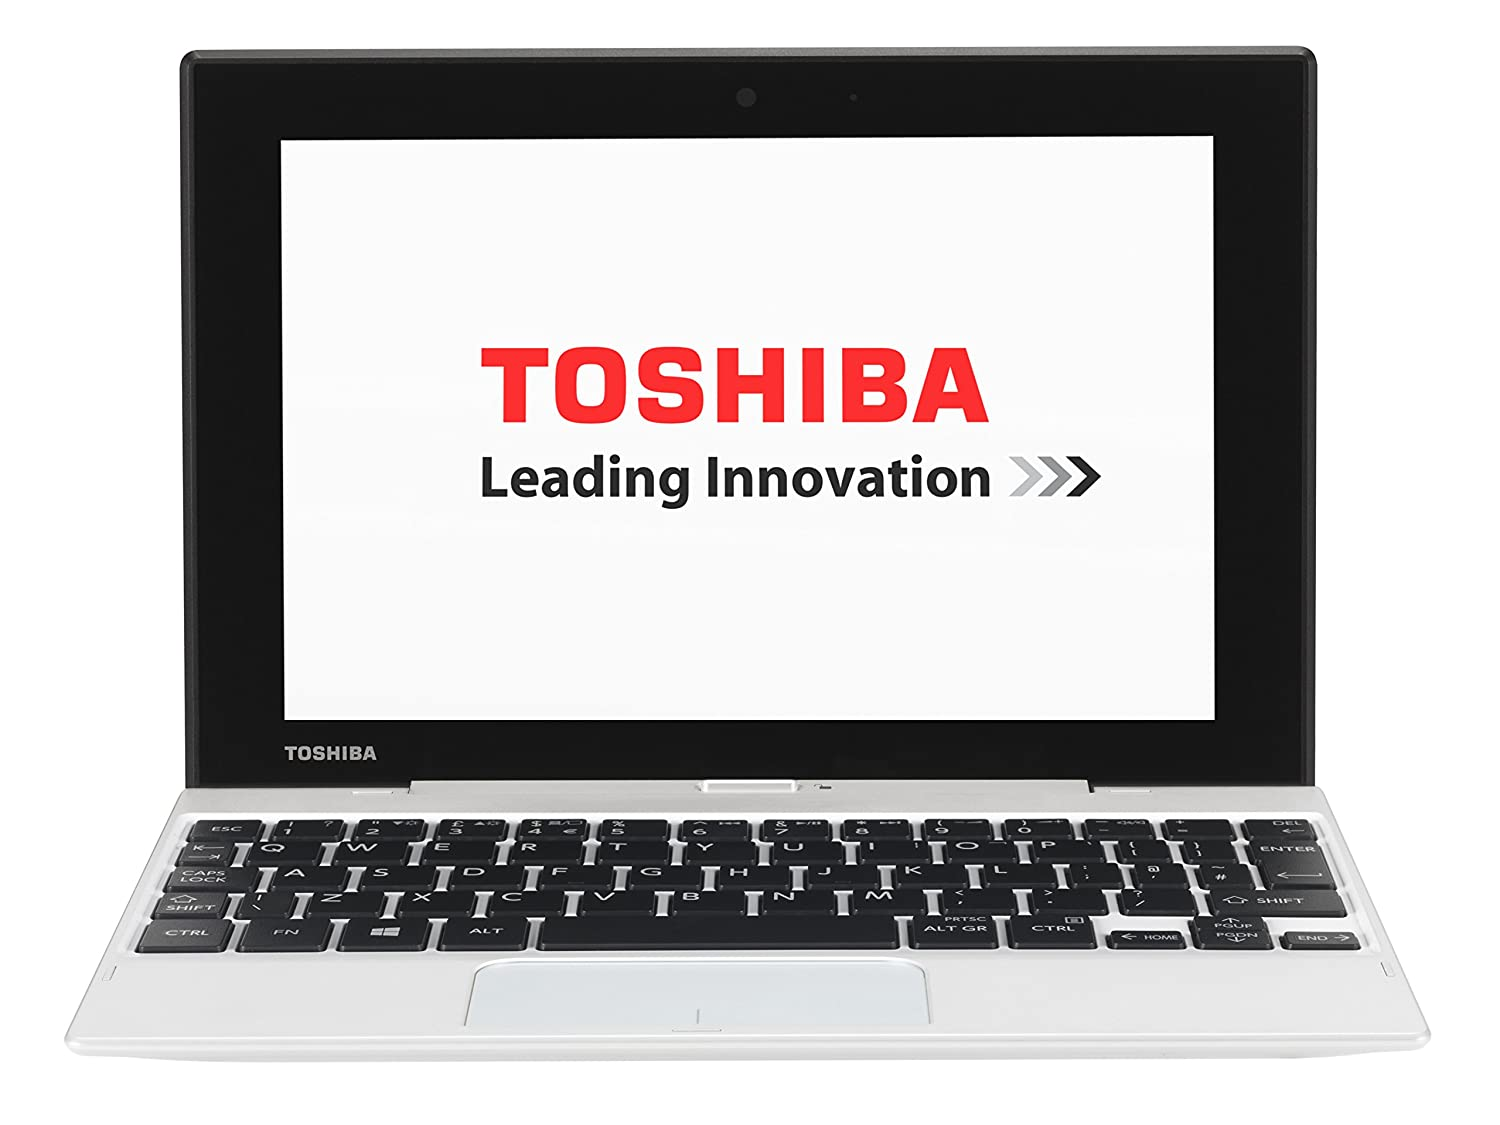 Toshiba Satellite Click Mini 89 Inch Laptop Intel Atom 133 Ghz 2 Power Connector Wiring Diagram Gb Ram 32 Hdd Windows 81 Computers Accessories